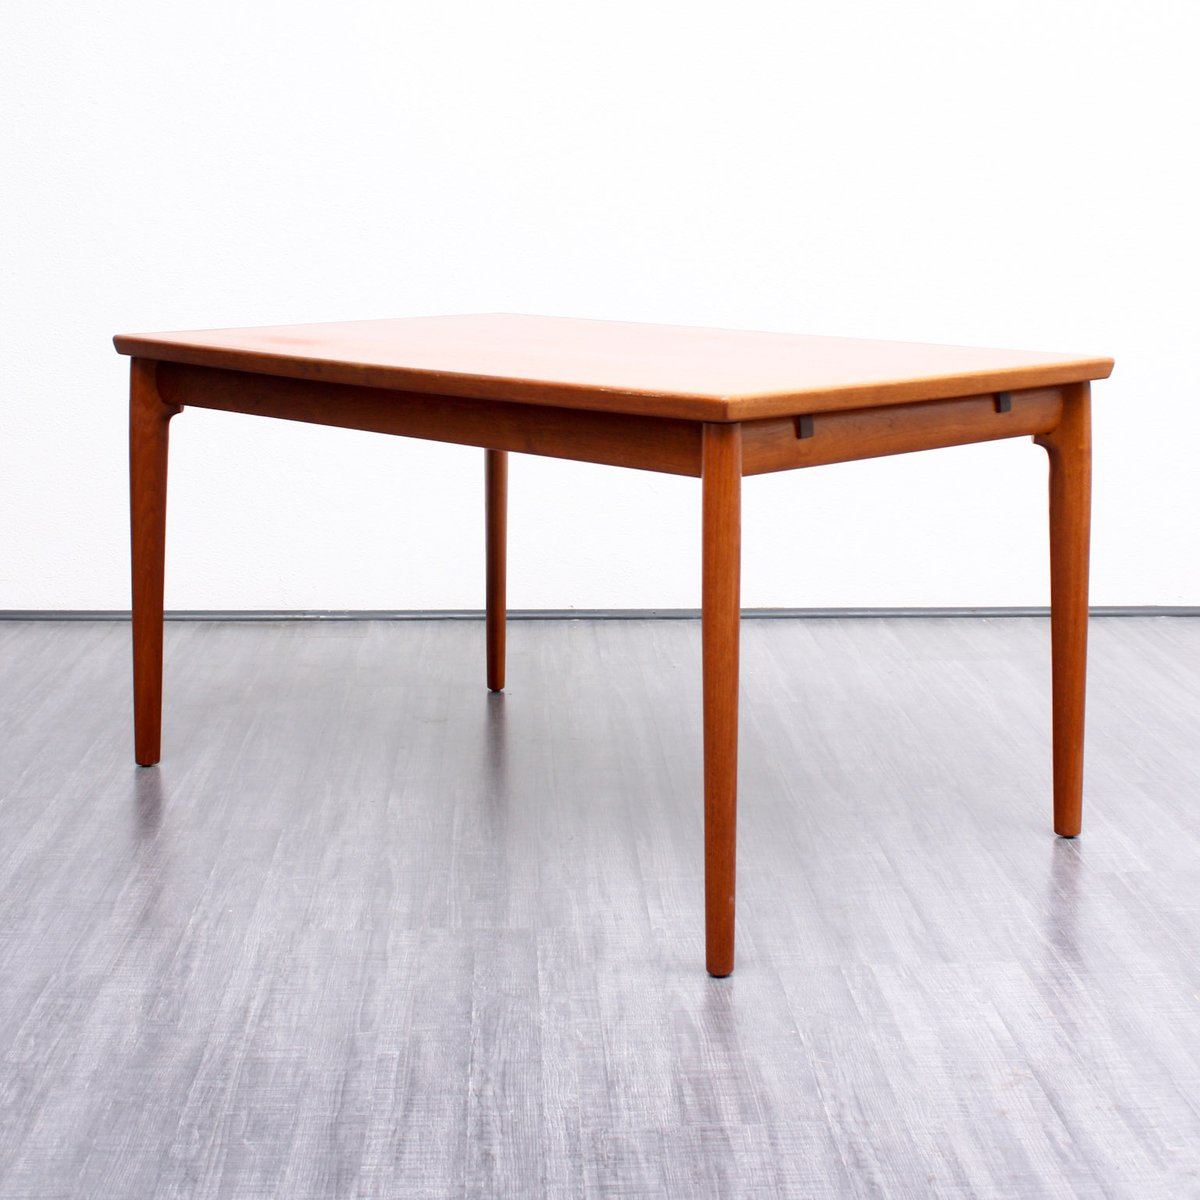 Dining Table in Teak 1960s for sale at Pamono : dining table in teak 1960s 6 from www.pamono.co.uk size 1200 x 1200 jpeg 84kB